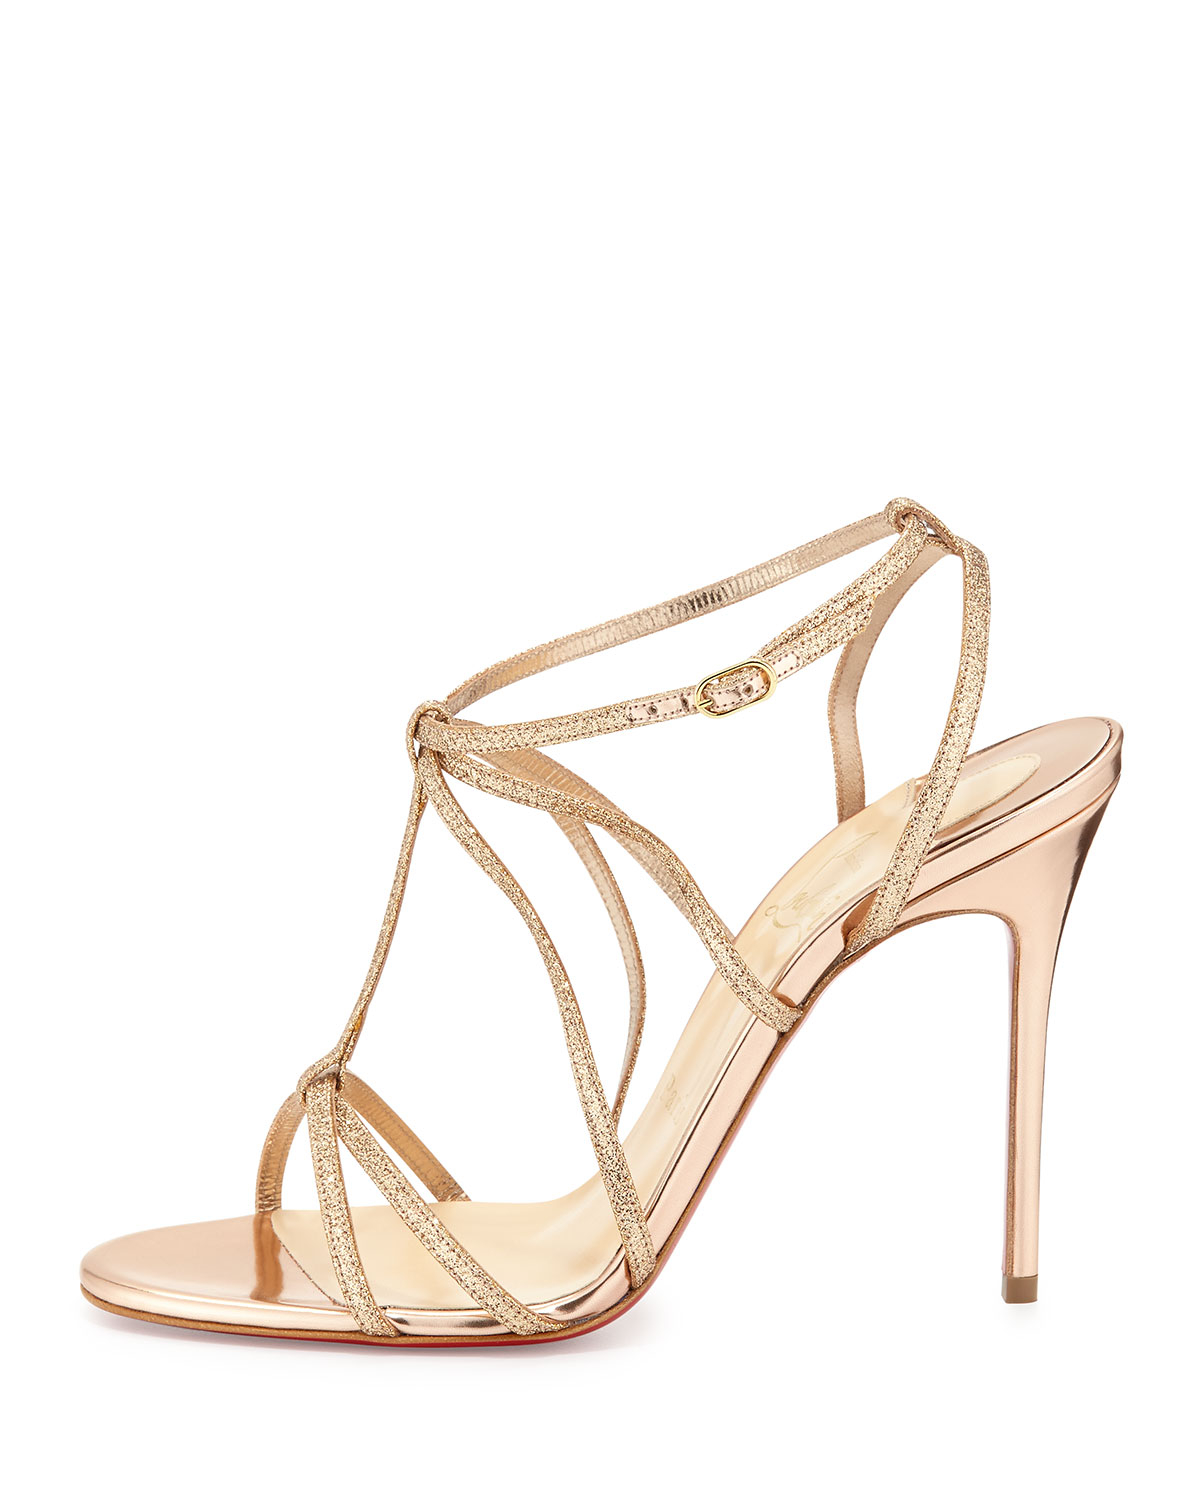 0f5f10aa785 Lyst - Christian Louboutin Youpiyou Glittered Red Sole Sandal in Metallic